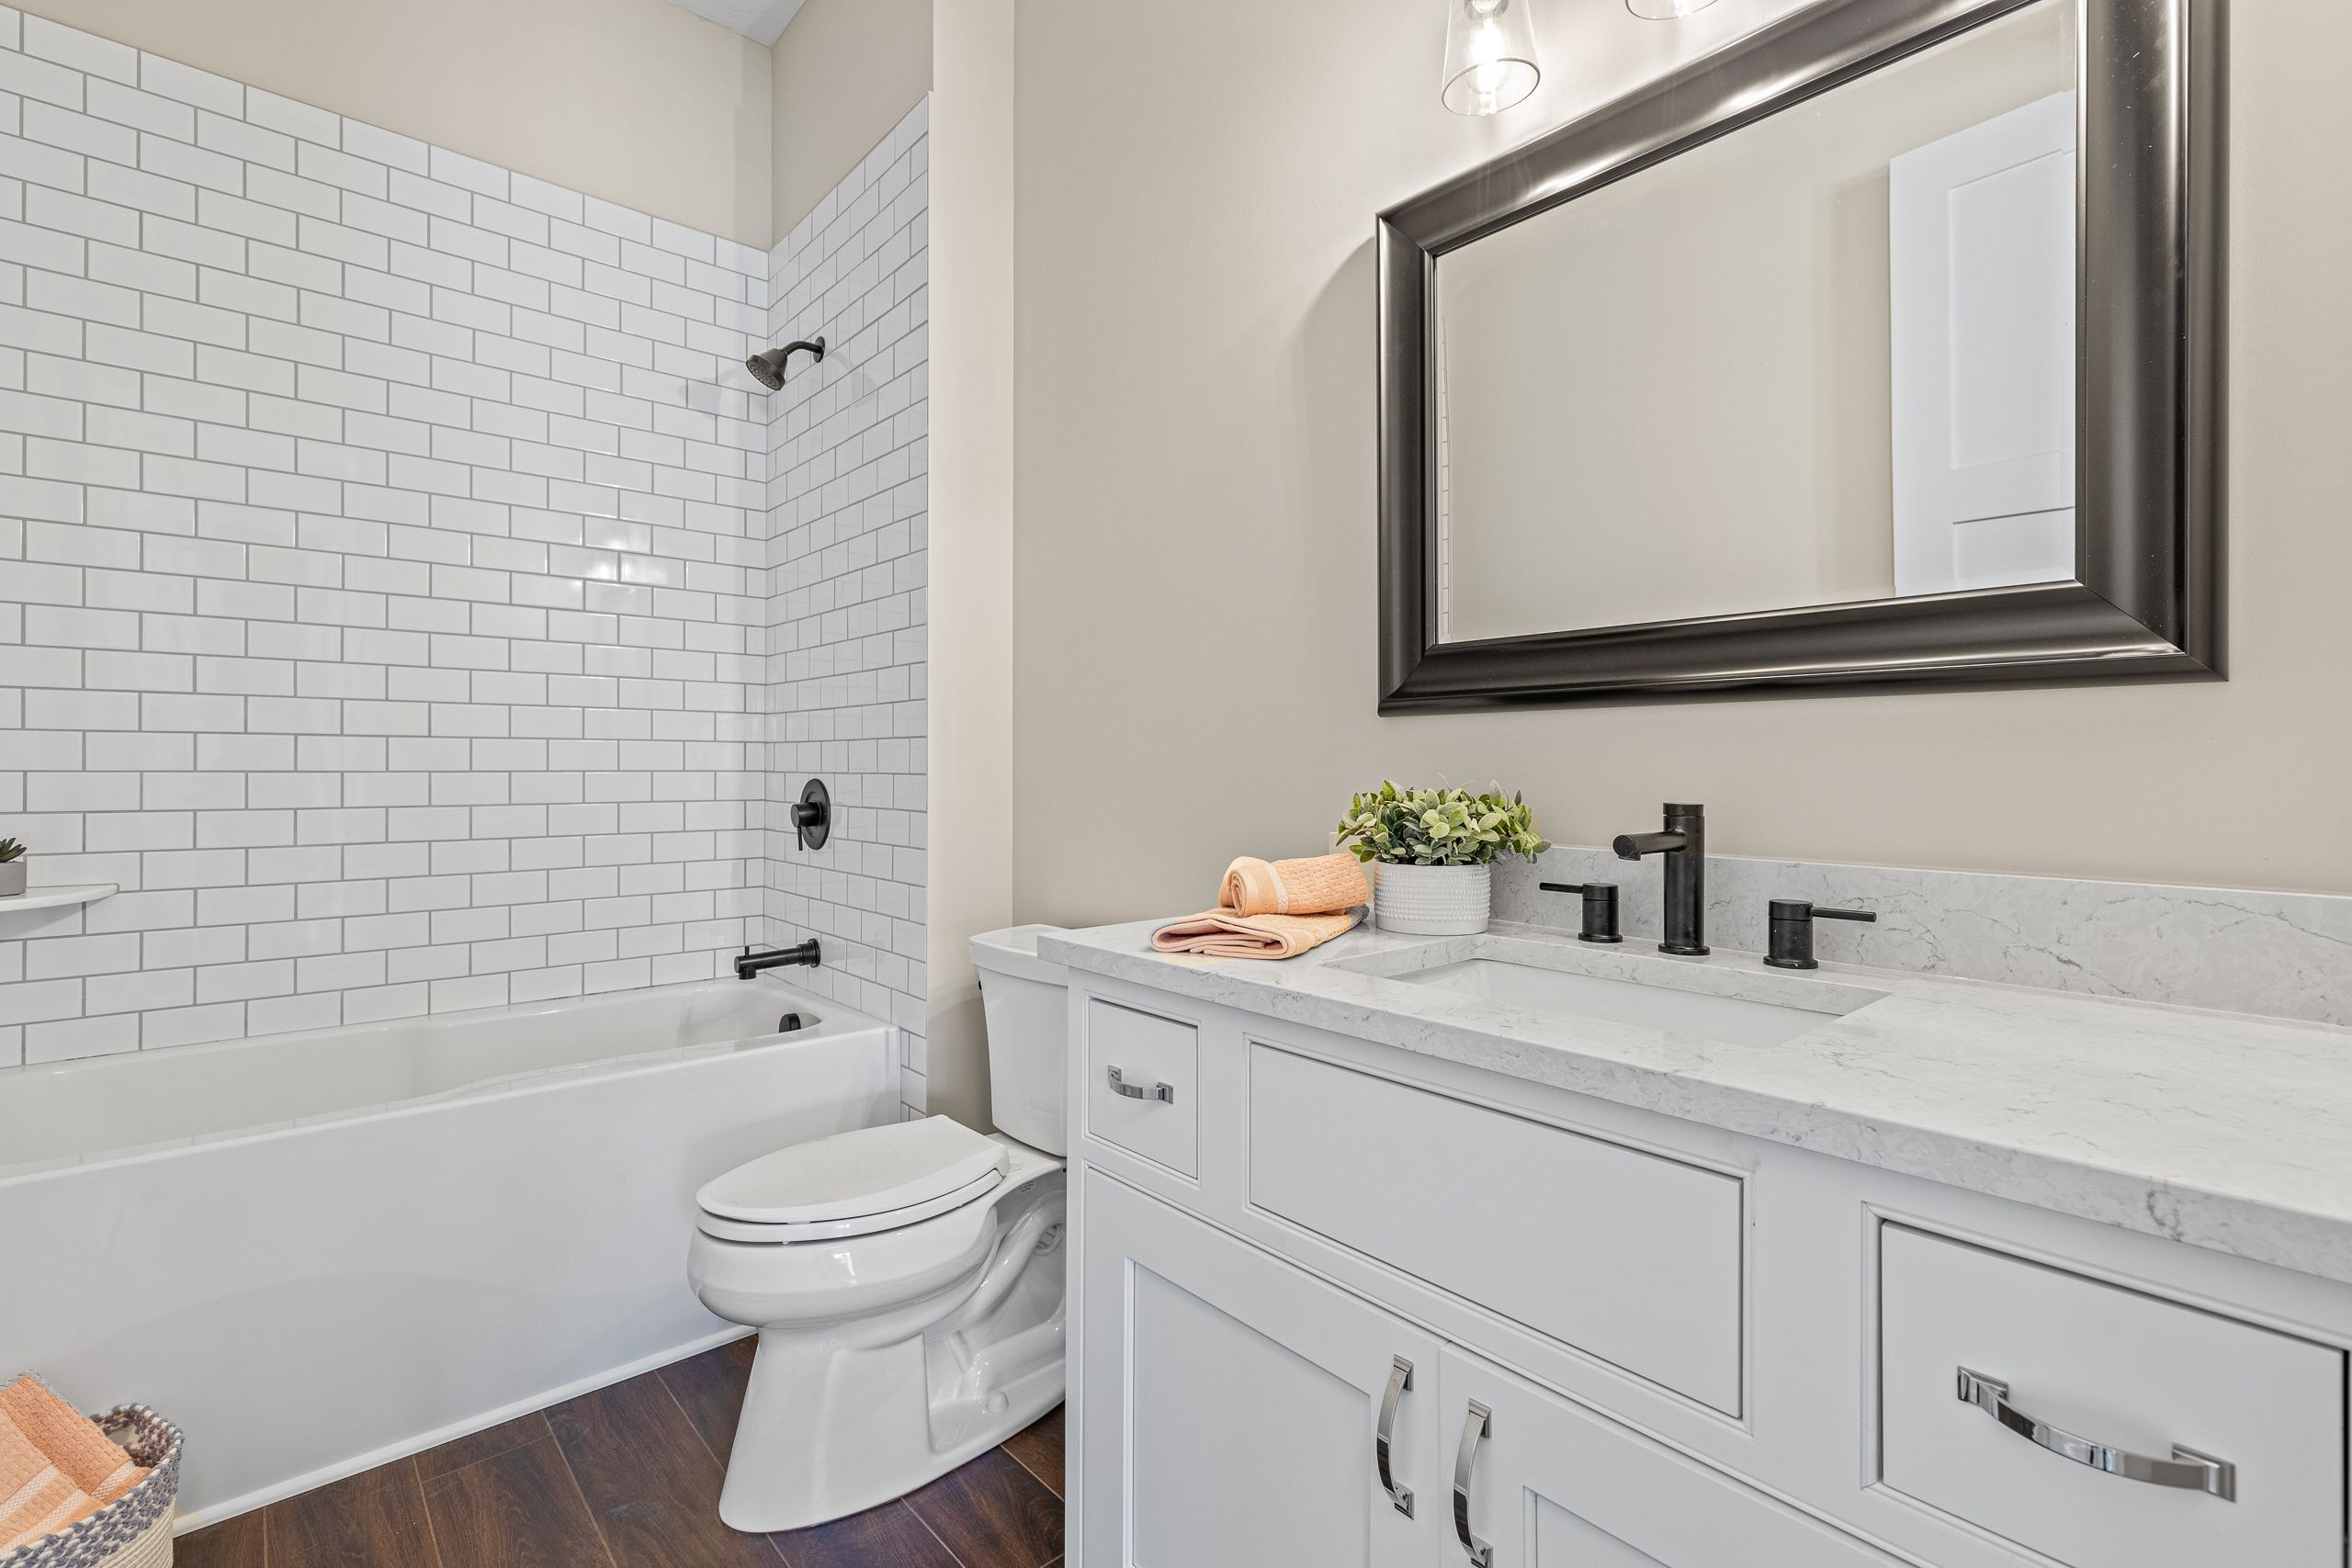 Bathroom featured in the Mulberry By Skoda Construction in Cleveland, OH